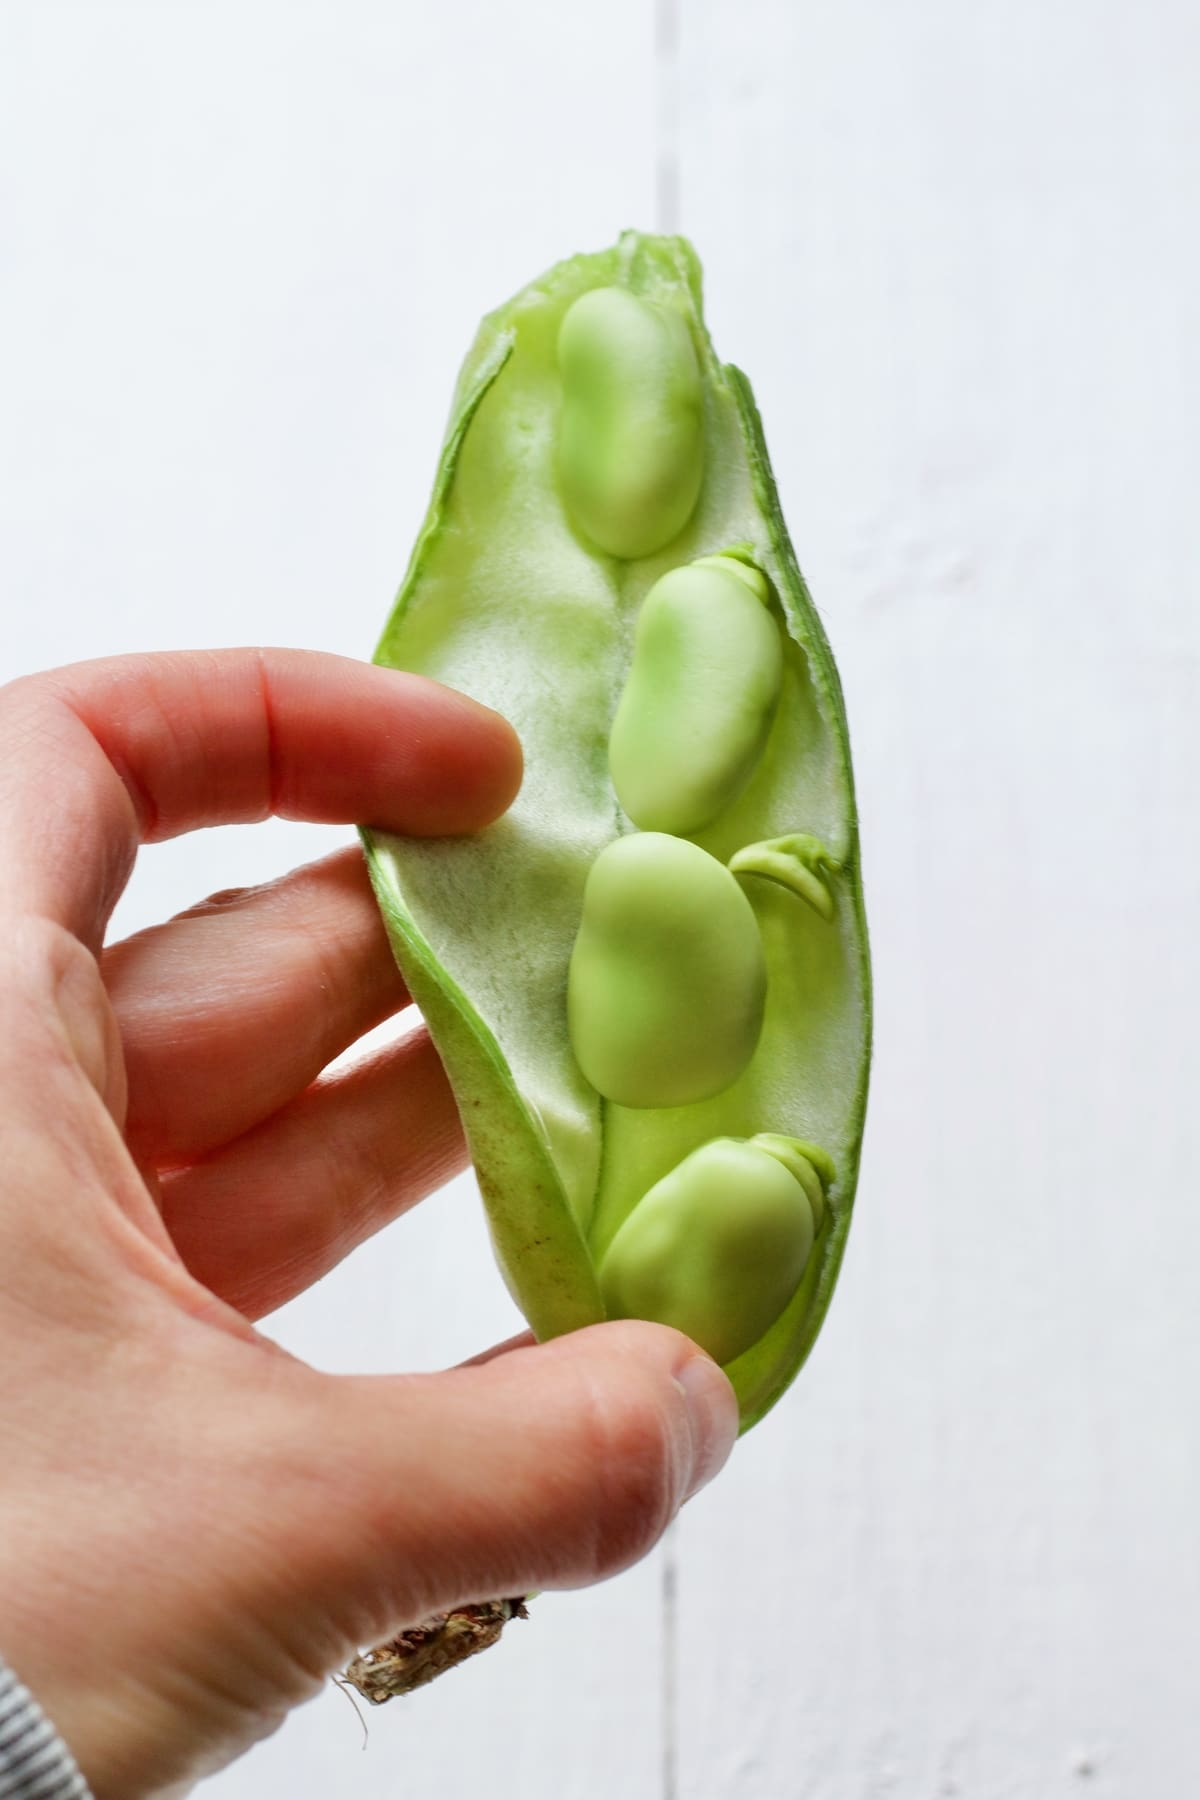 Hand holding open pod with 4 broad beans inside it.